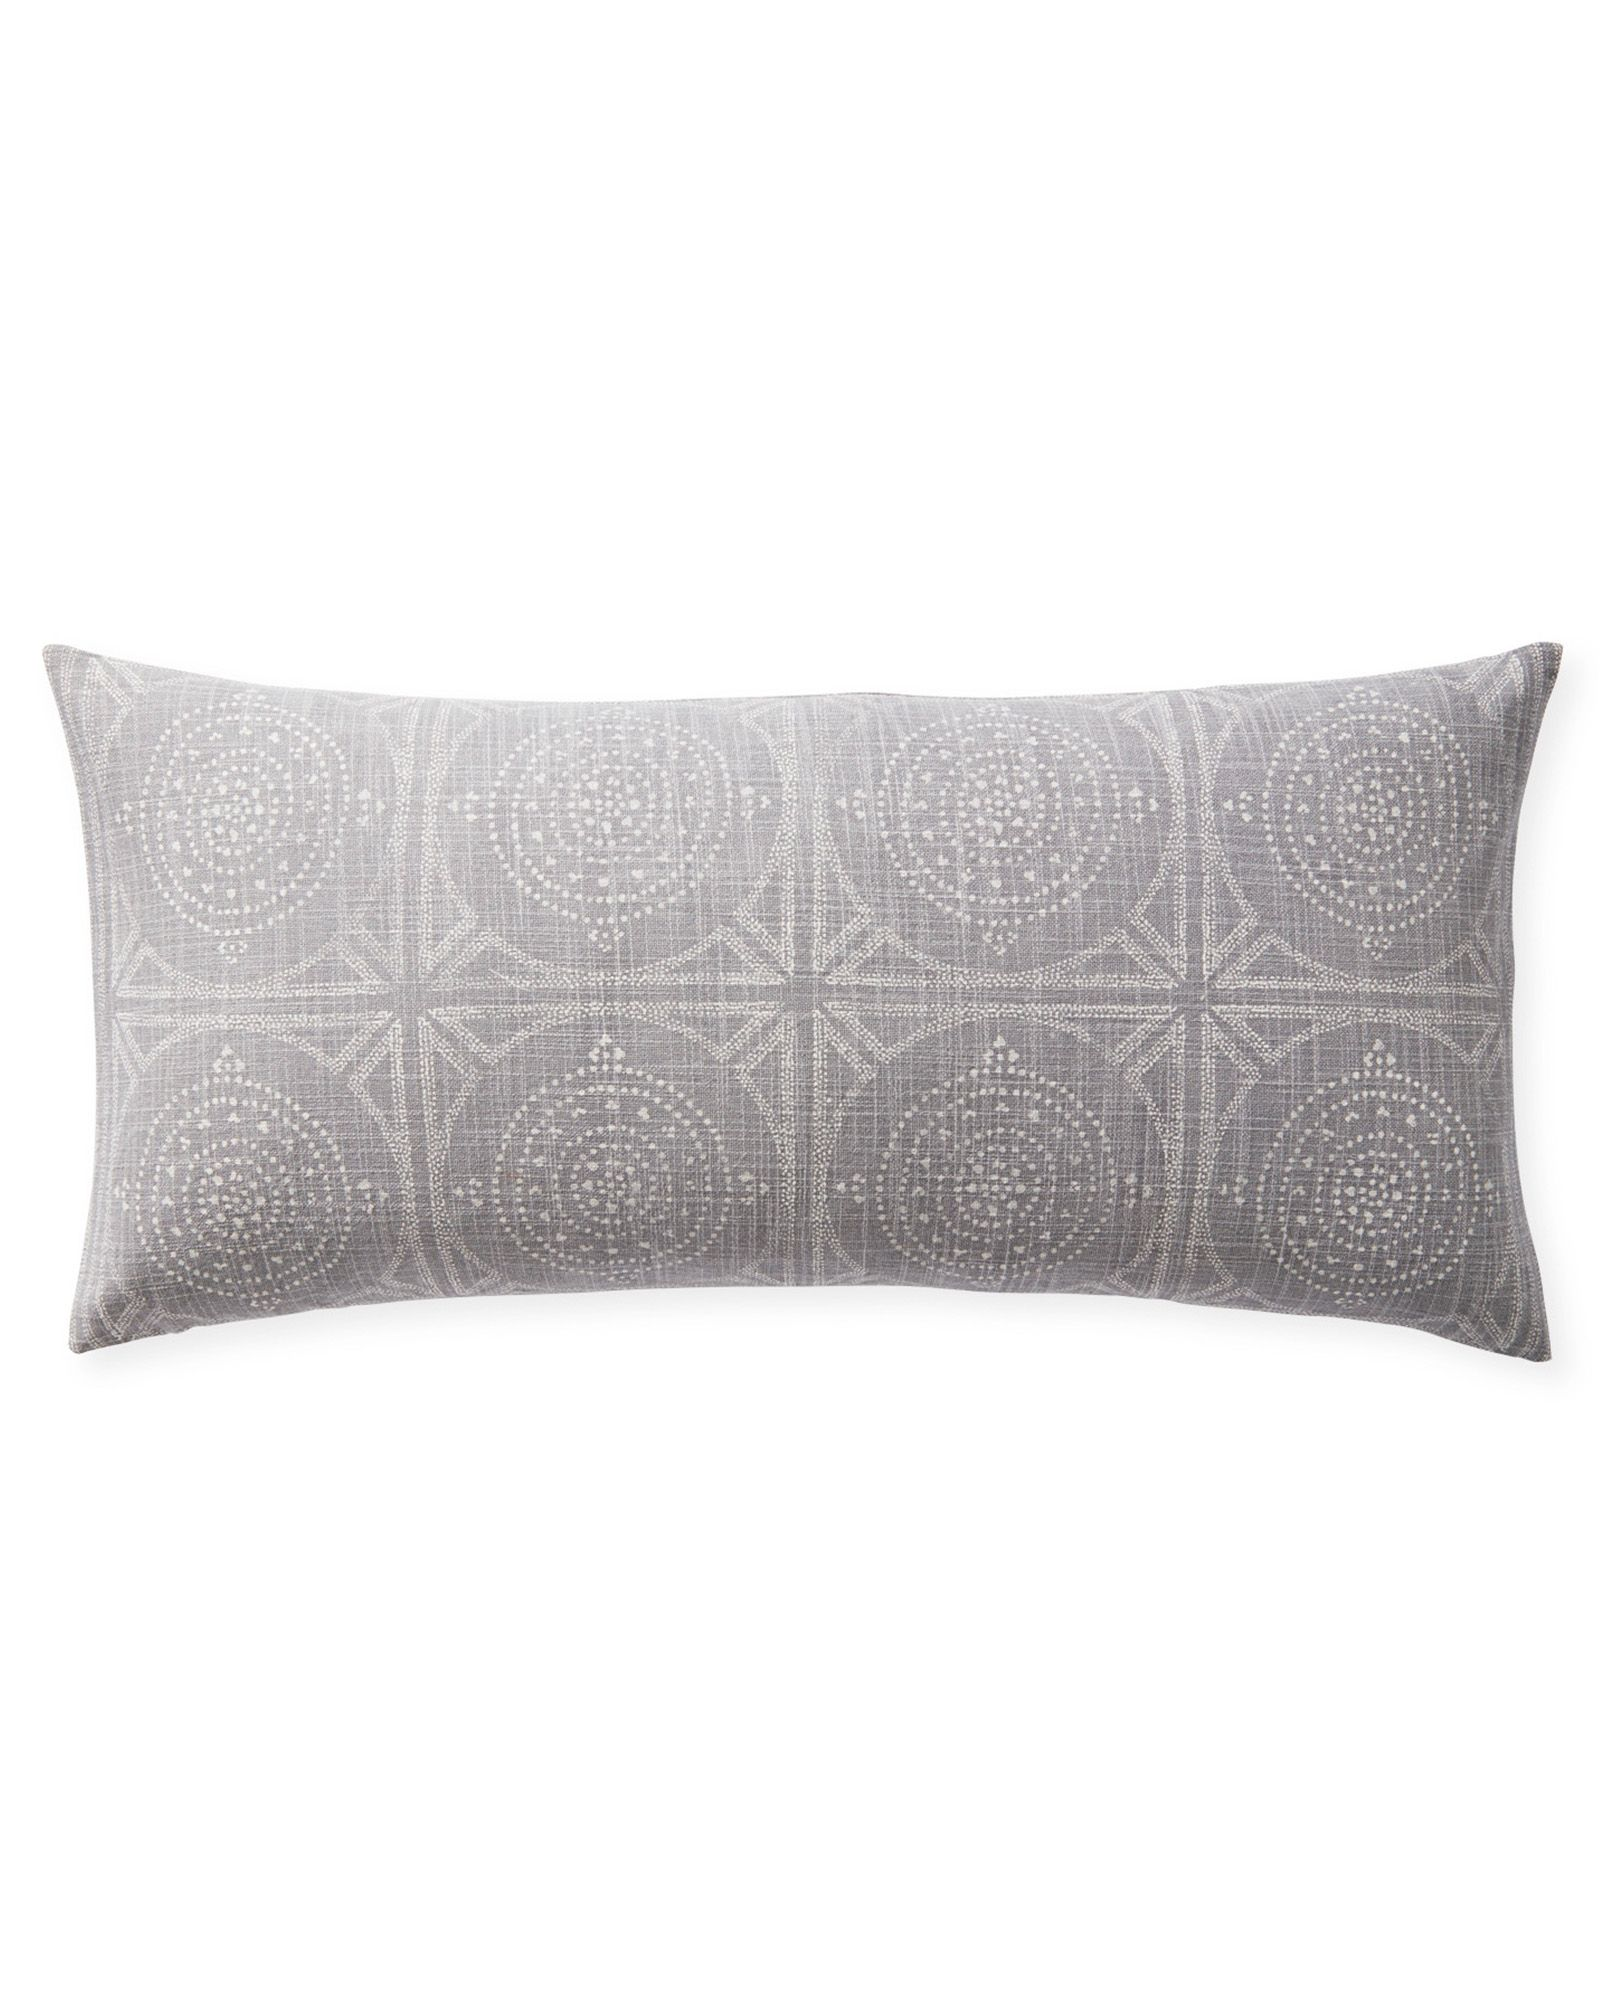 Camille Mosaic Lumbar Pillow Cover D08s Dp236 1430 Pillows